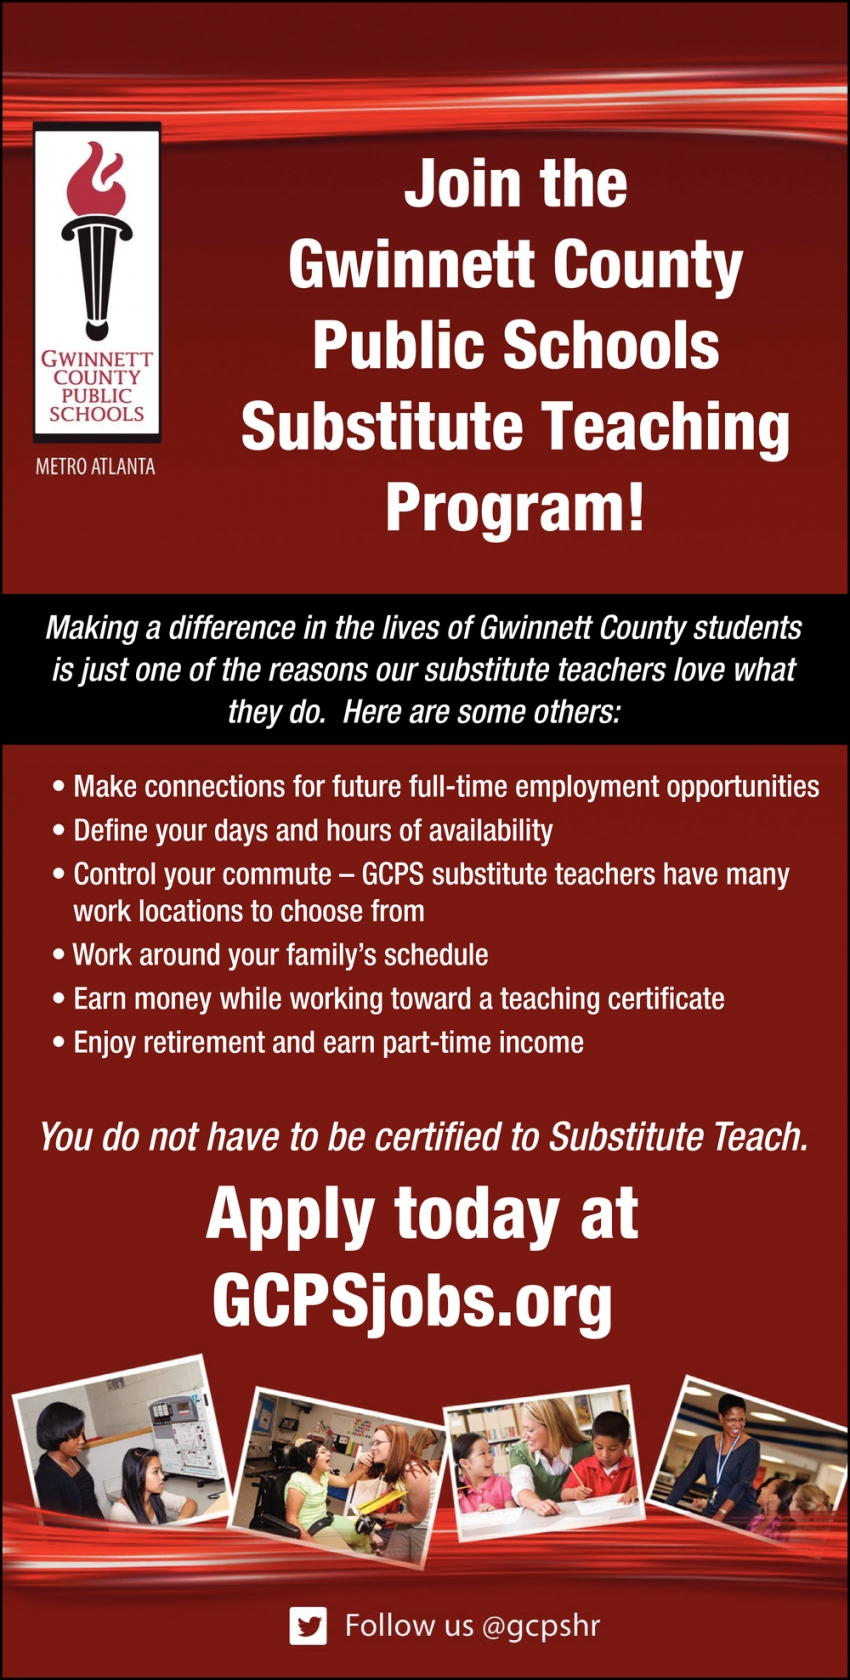 Join the Gwinnett County Public Schools Substitute Teaching Program!